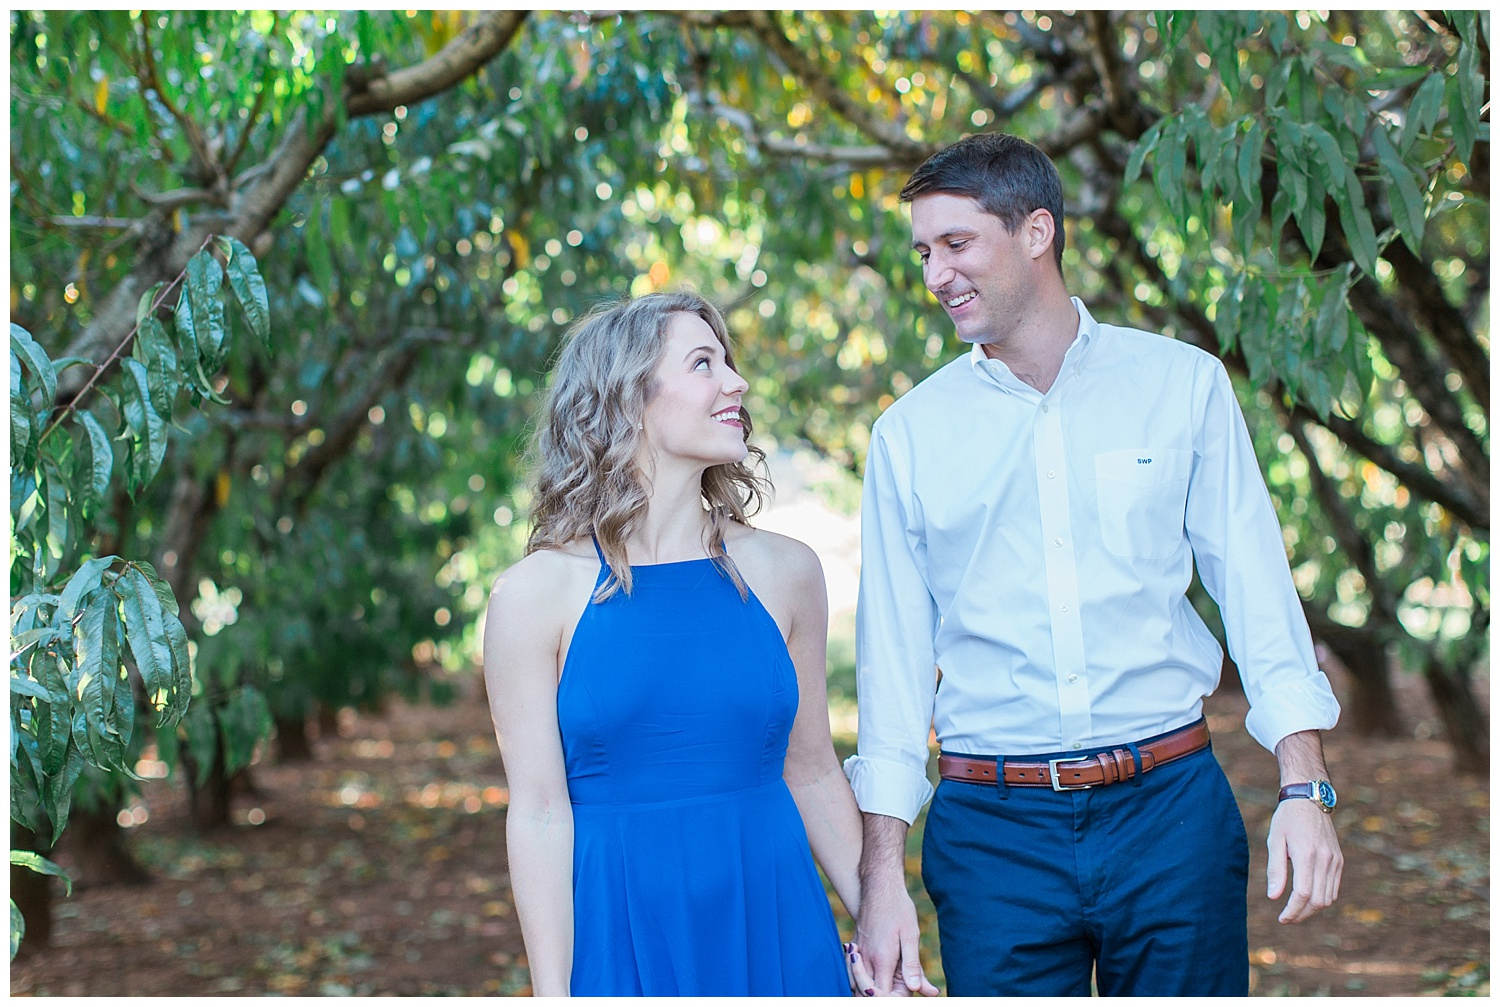 charlottesville_wedding_photographer_chiles_peach_orchard4.jpg